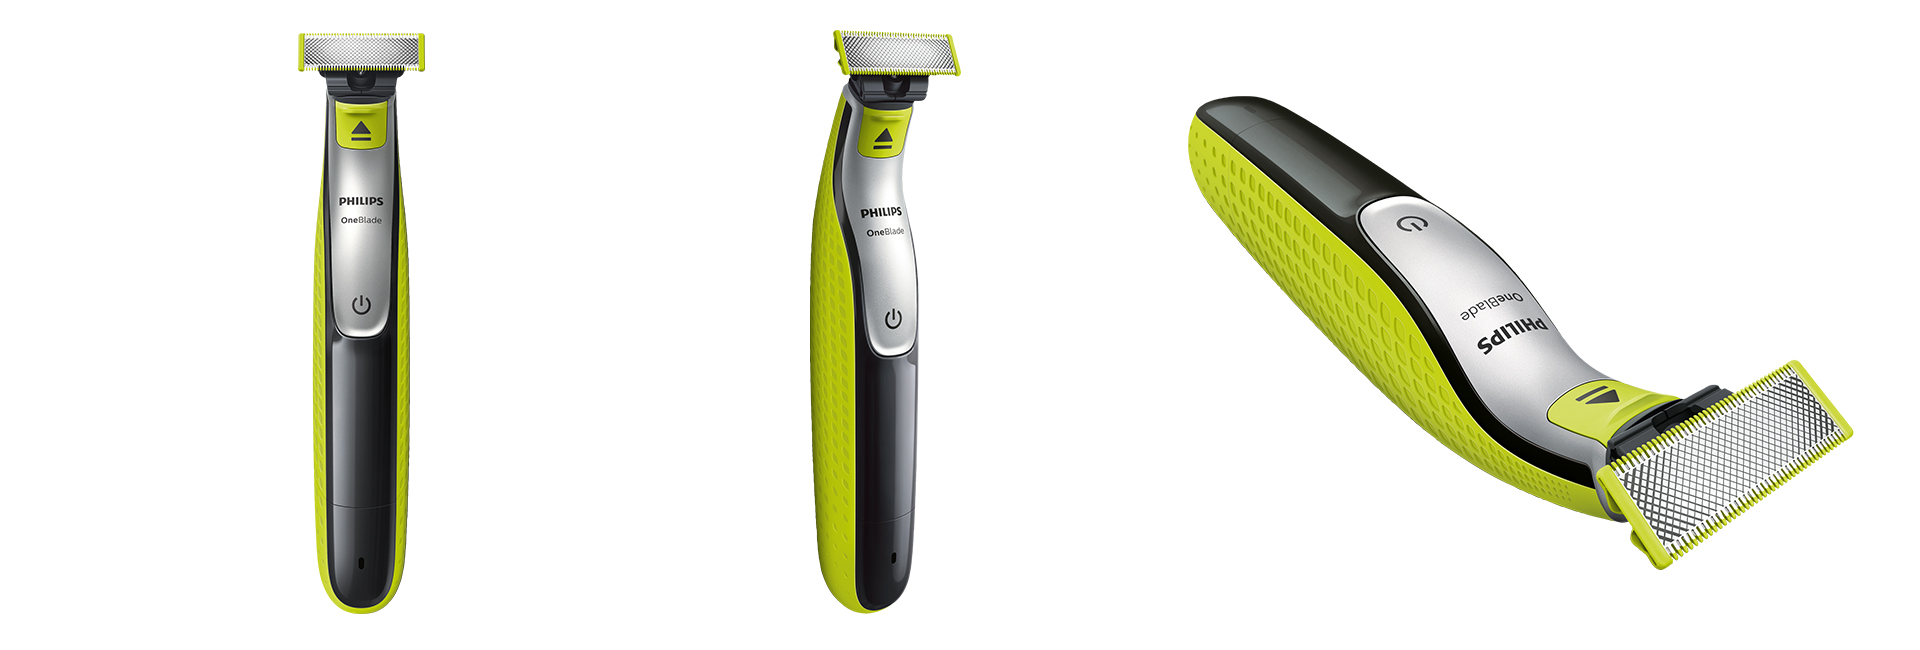 oneblade-philips-blog-beaute-soin-parfum-homme